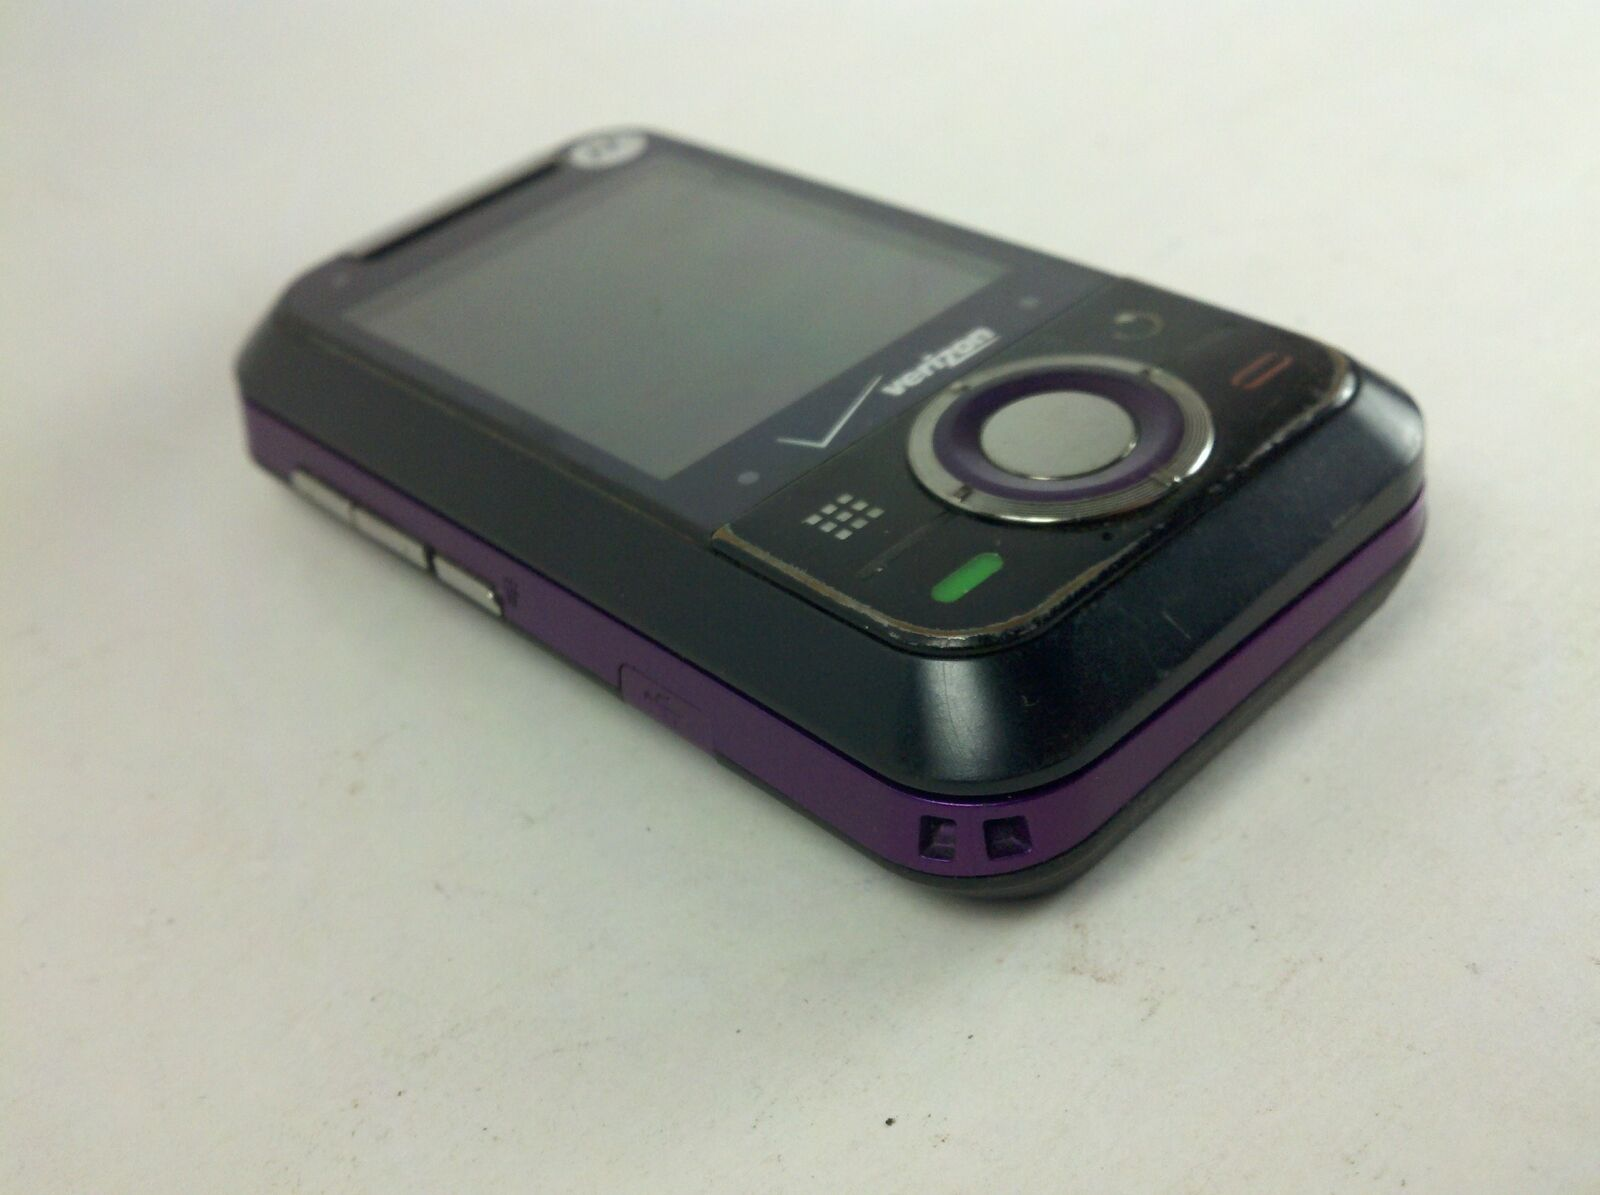 Motorola Verizon Model Rival A455 Purple & Black Cell Phone with Page Plus image 2